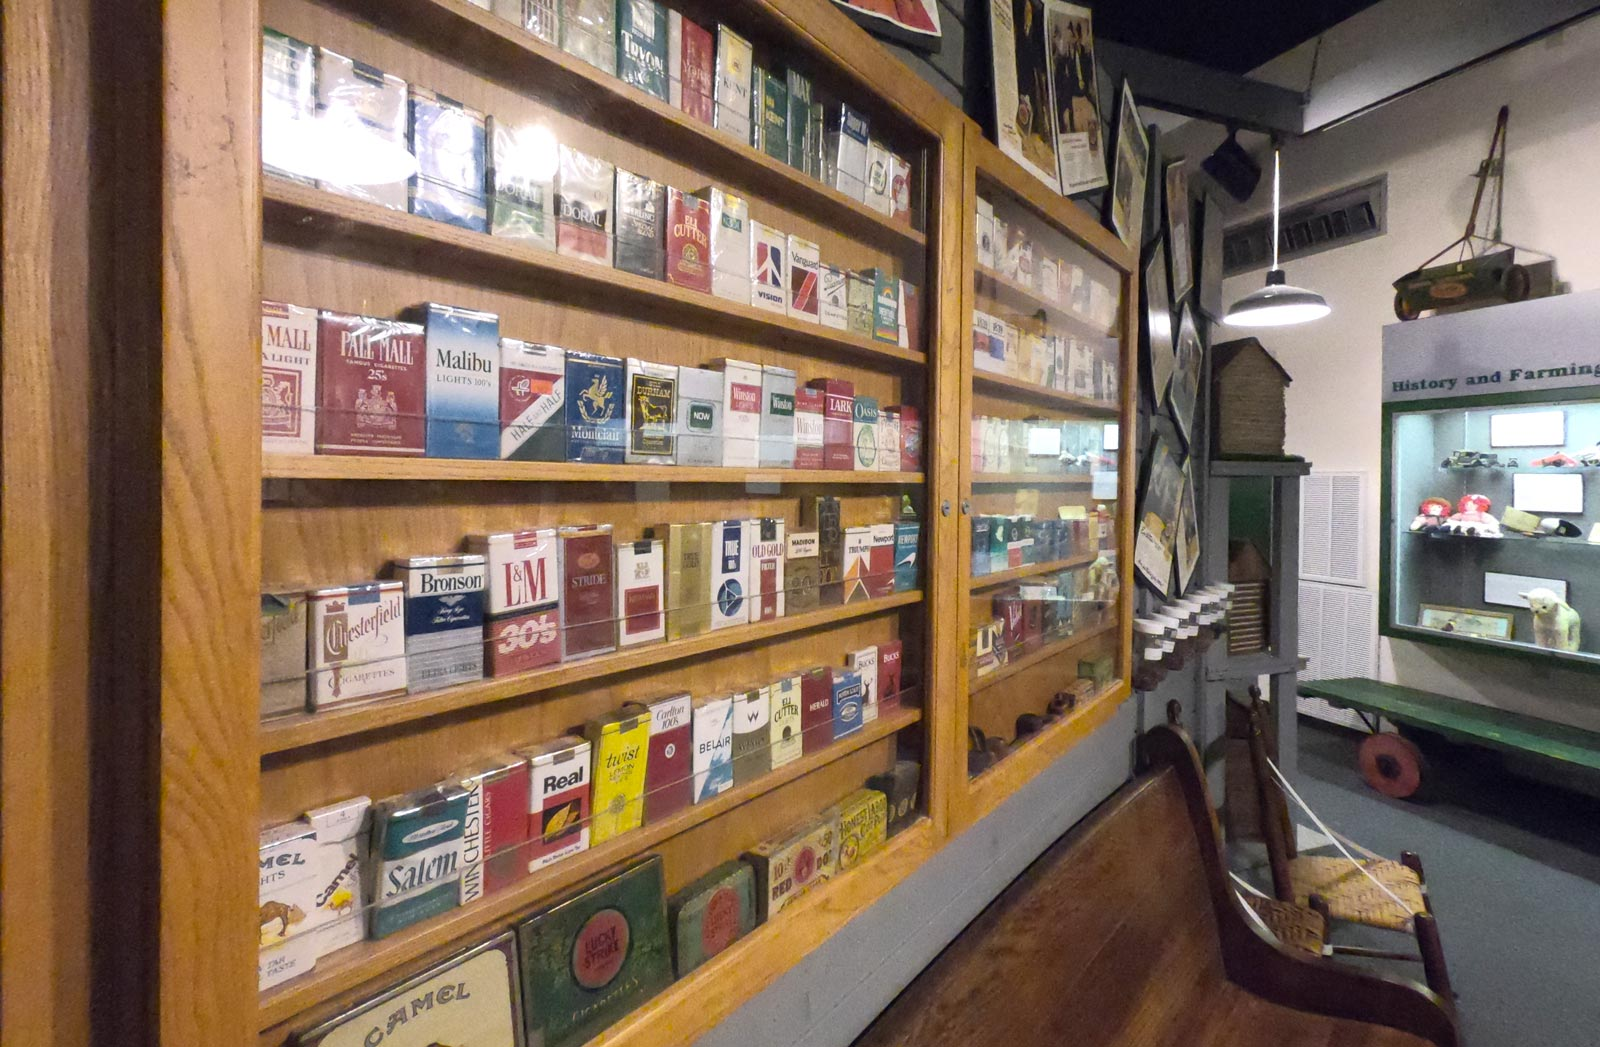 Visit the indoor exhibit featuring different brands of cigarette packs at Tobacco Farm Life Museum, Kenly, North Carolina